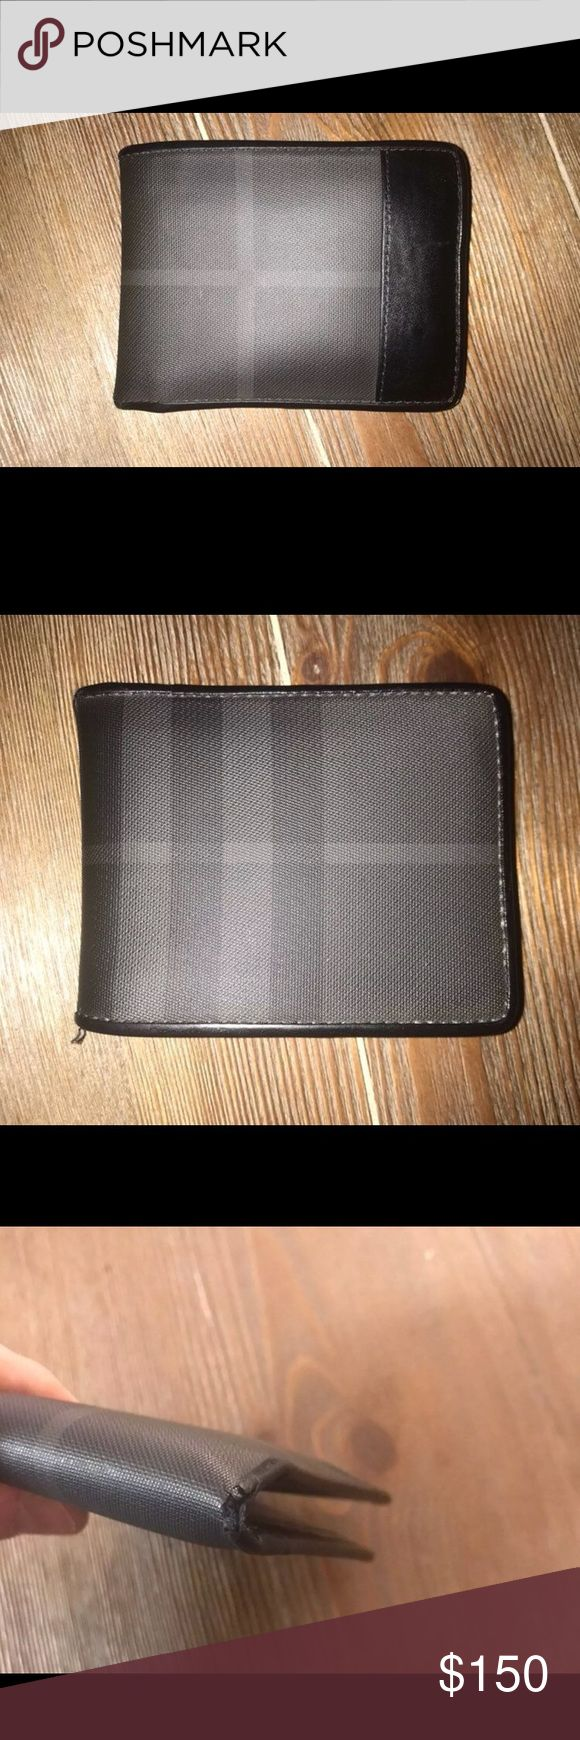 Burberry bifold wallet Used men's Burberry wallet. Wear on corner shown in photo but still in great shape. All offers  considered. Thanks for looking! Burberry Bags Wallets